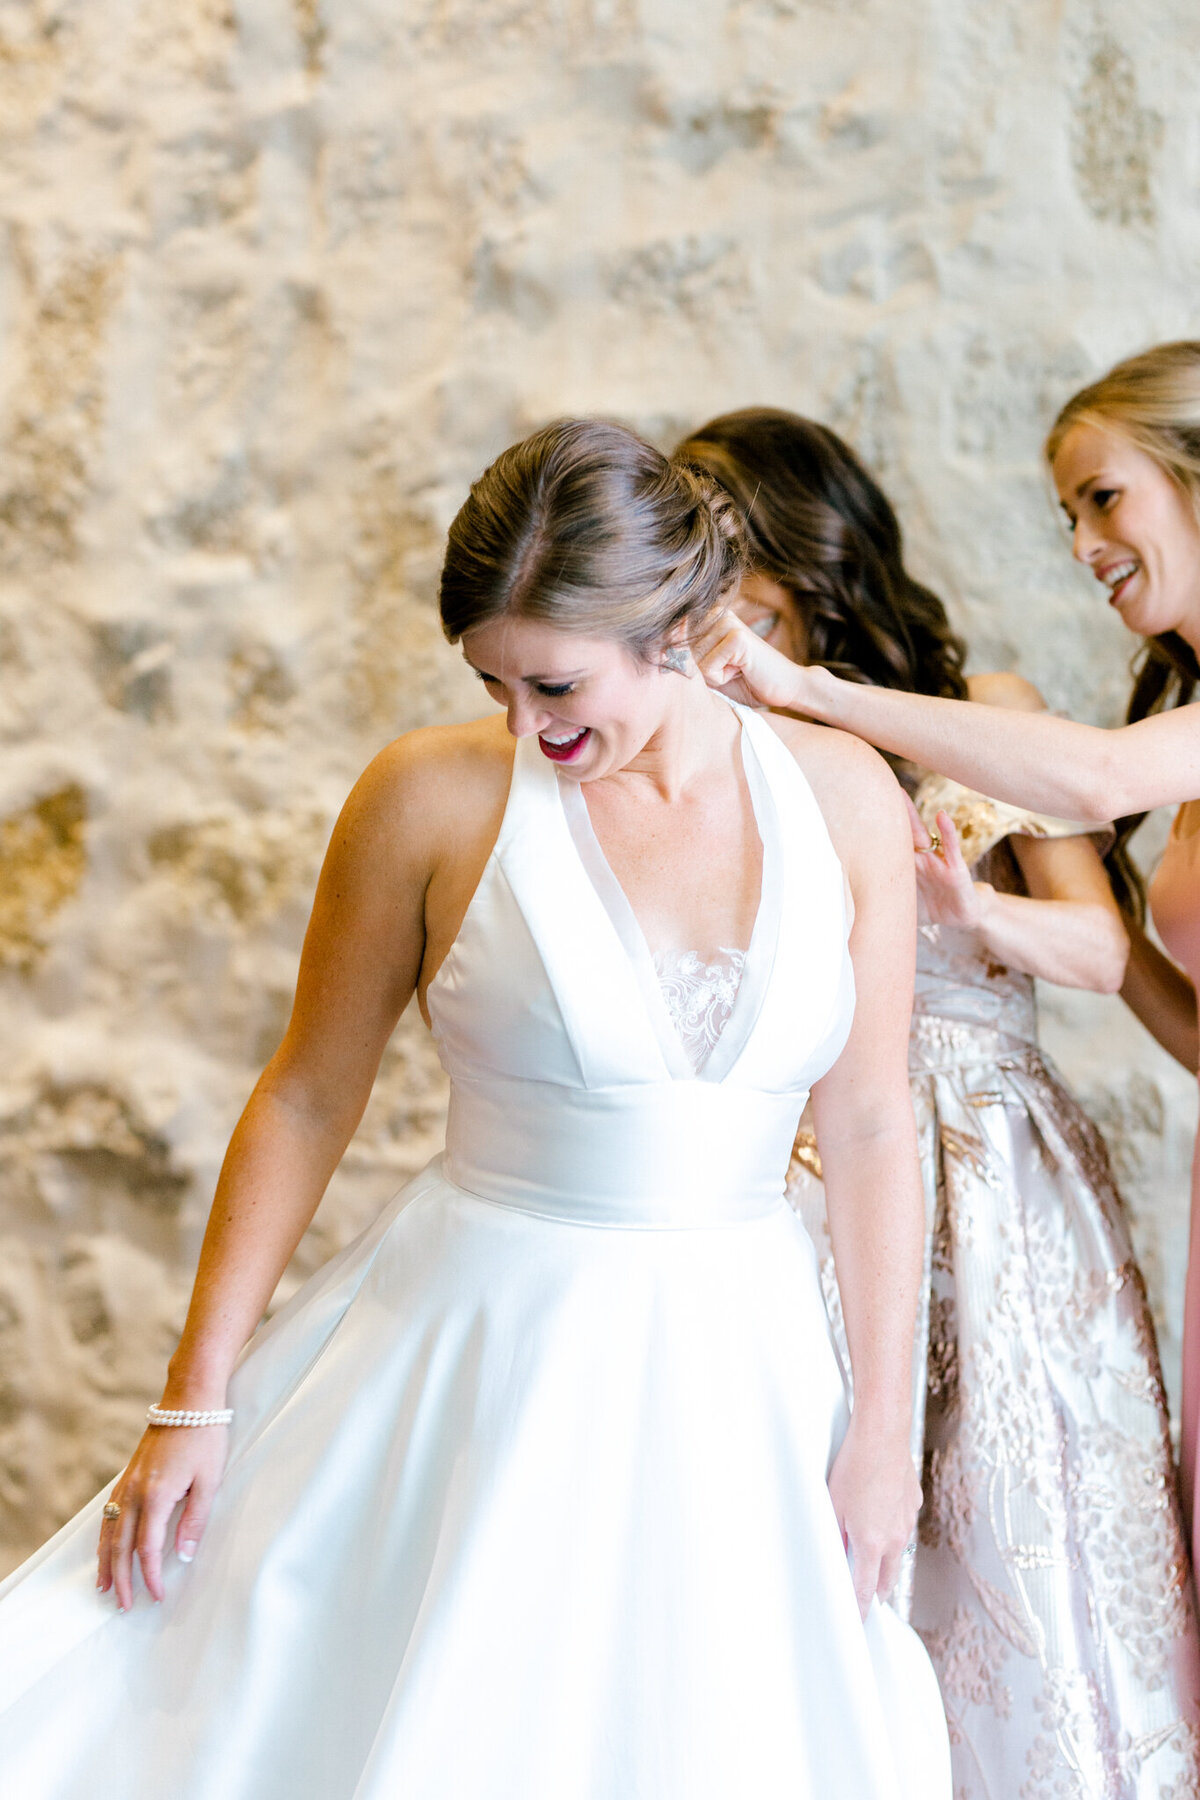 Kaylee & Michael's Wedding at Watermark Community Church | Dallas Wedding Photographer | Sami Kathryn Photography-27